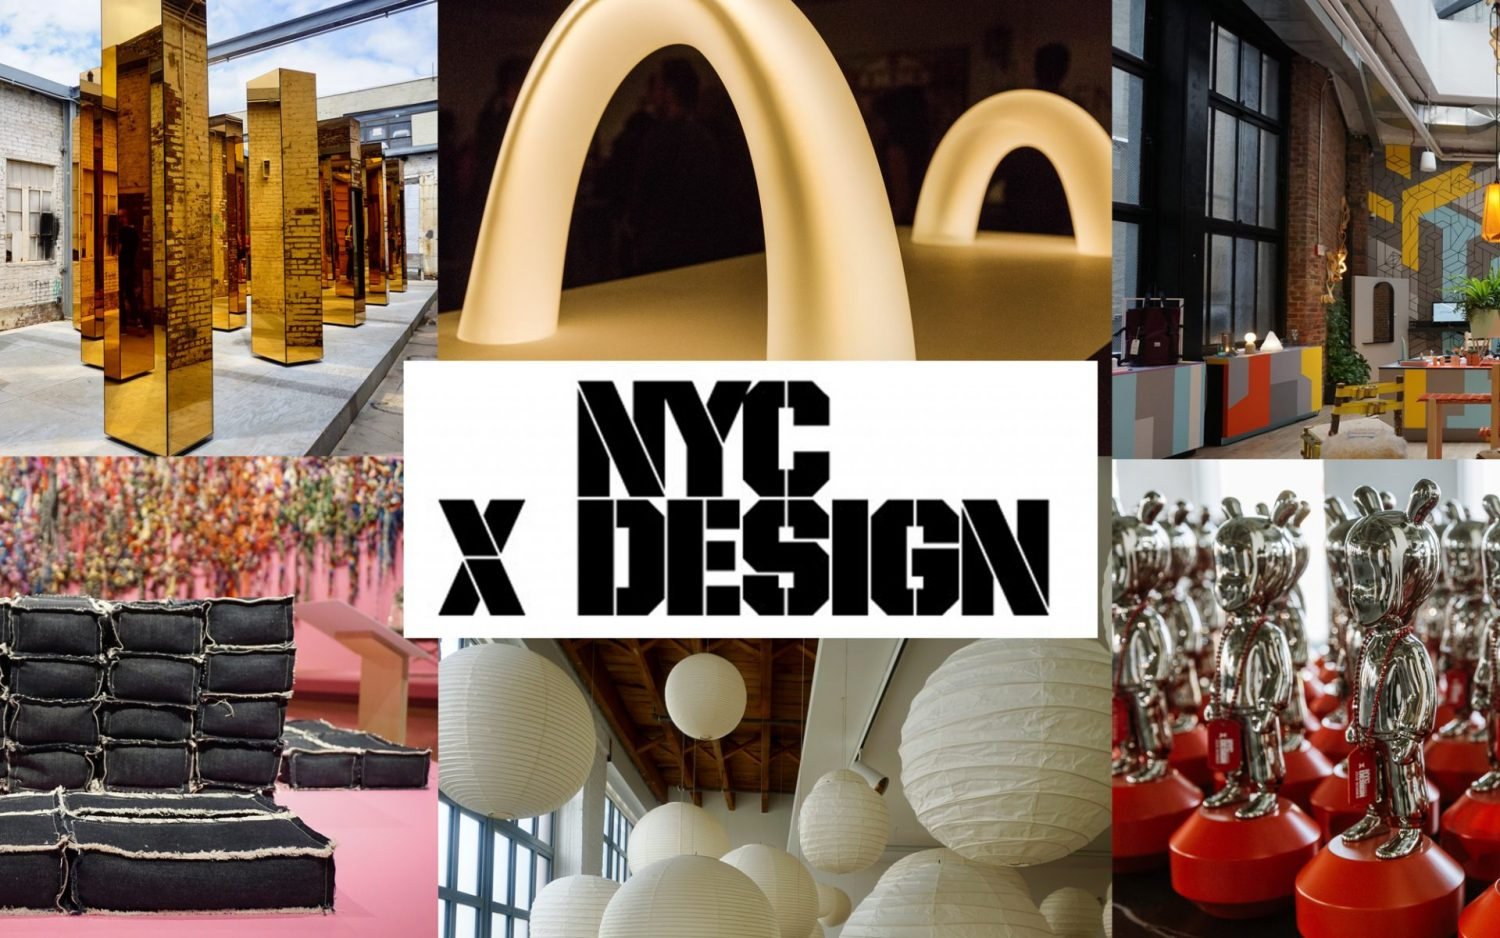 NYCxDesign 2019 Event Guide nycxdesign 2019 event guide NYCXDESIGN 2019 EVENT GUIDE nycxdesign